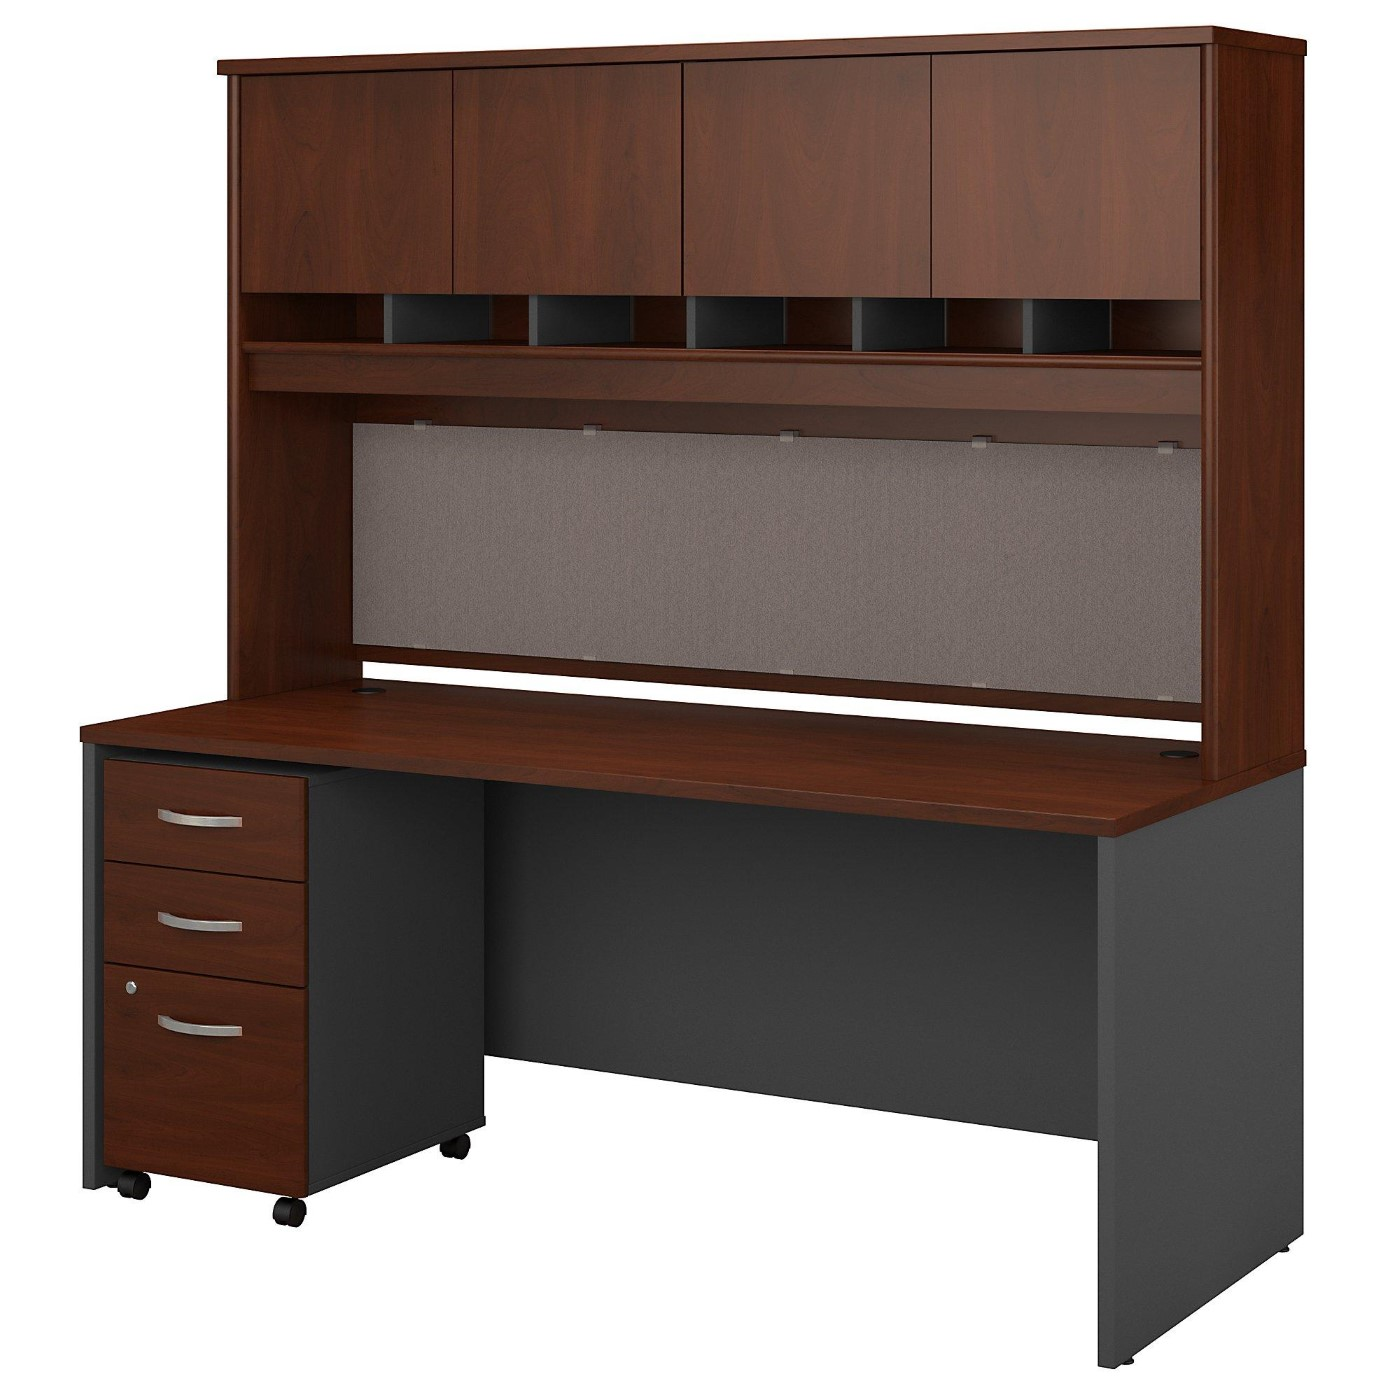 BUSH BUSINESS FURNITURE SERIES C 72W X 30D OFFICE DESK WITH HUTCH AND MOBILE FILE CABINET. FREE SHIPPING</font></b></font>&#x1F384<font color=red><b>ERGONOMICHOME HOLIDAY SALE - ENDS DEC. 17, 2019</b></font>&#x1F384